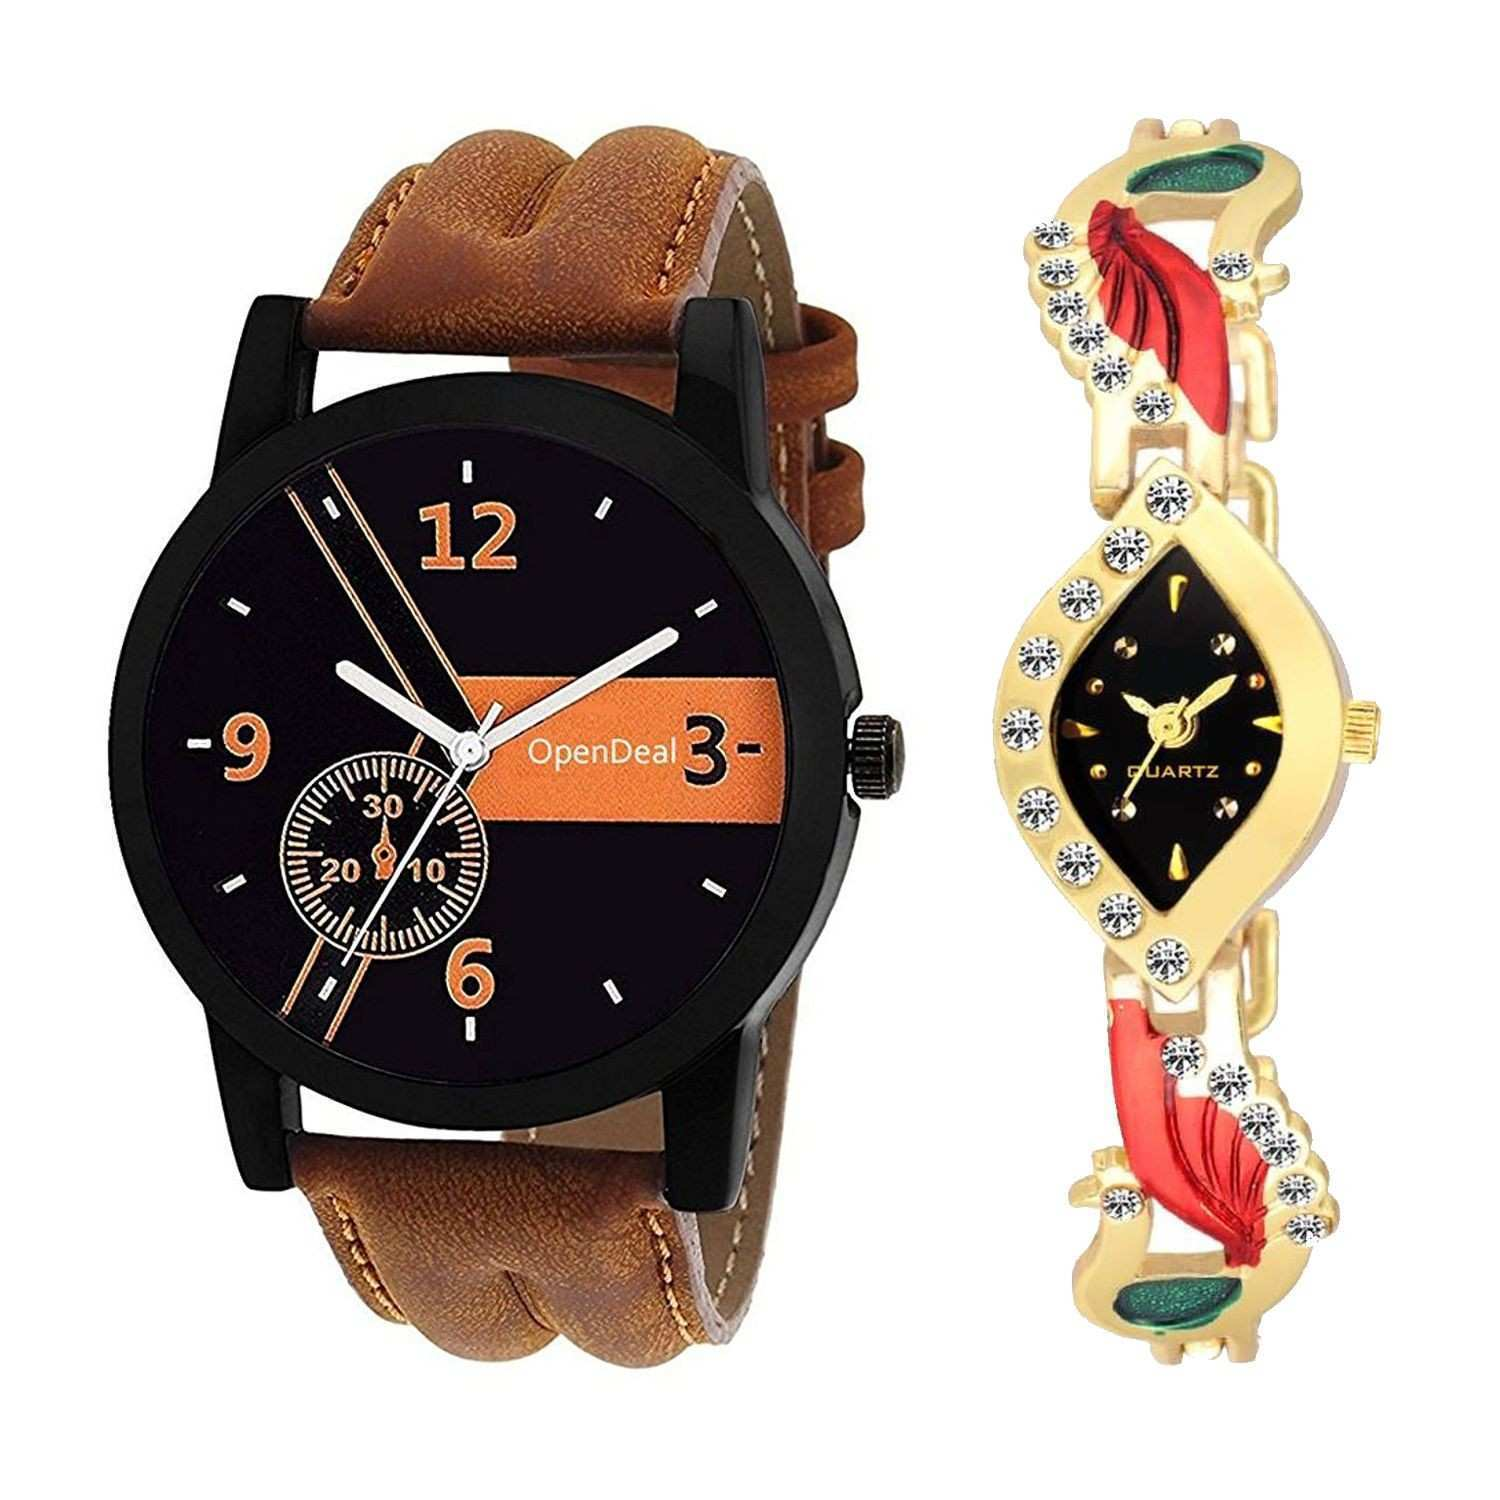 OD C2 011 New Arrival Stylish bo Couple Watch For Boys & Girls